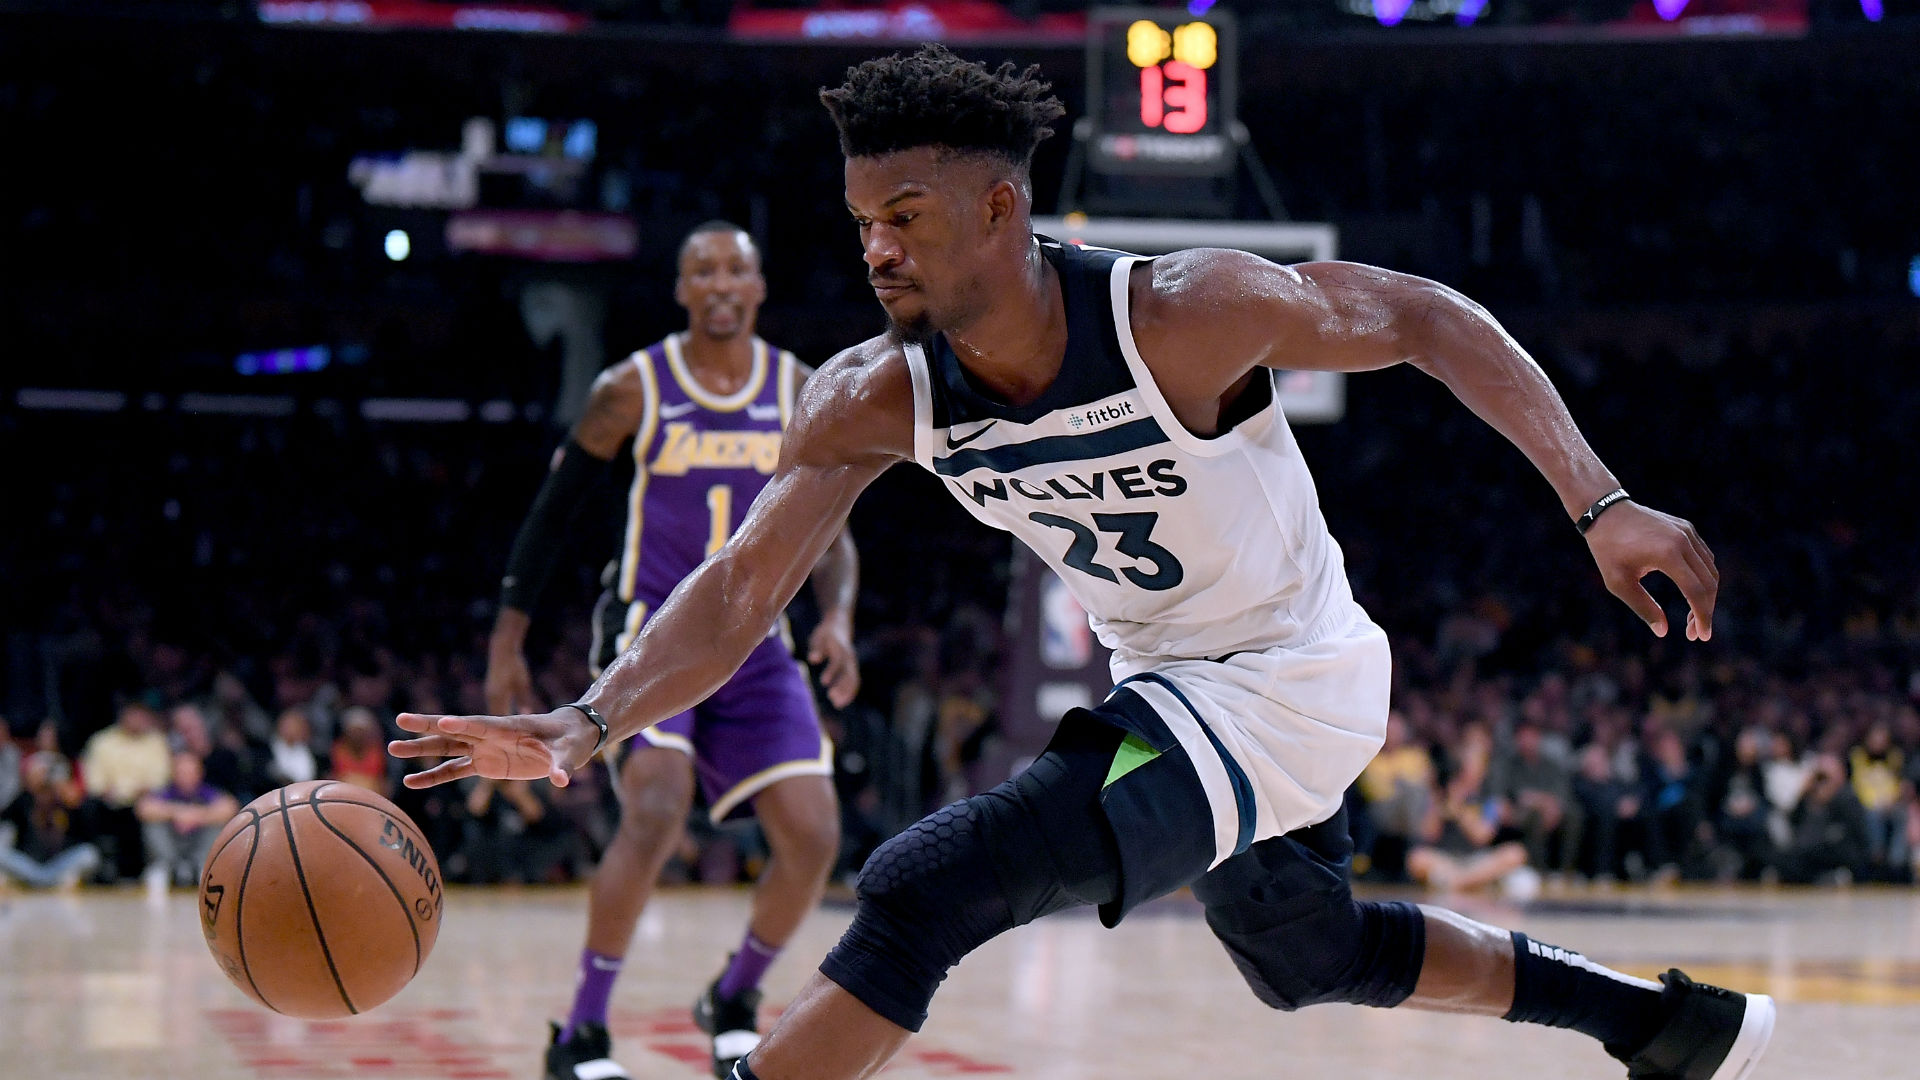 Butler: Timberwolves in 'big-time hole' and can't take criticism